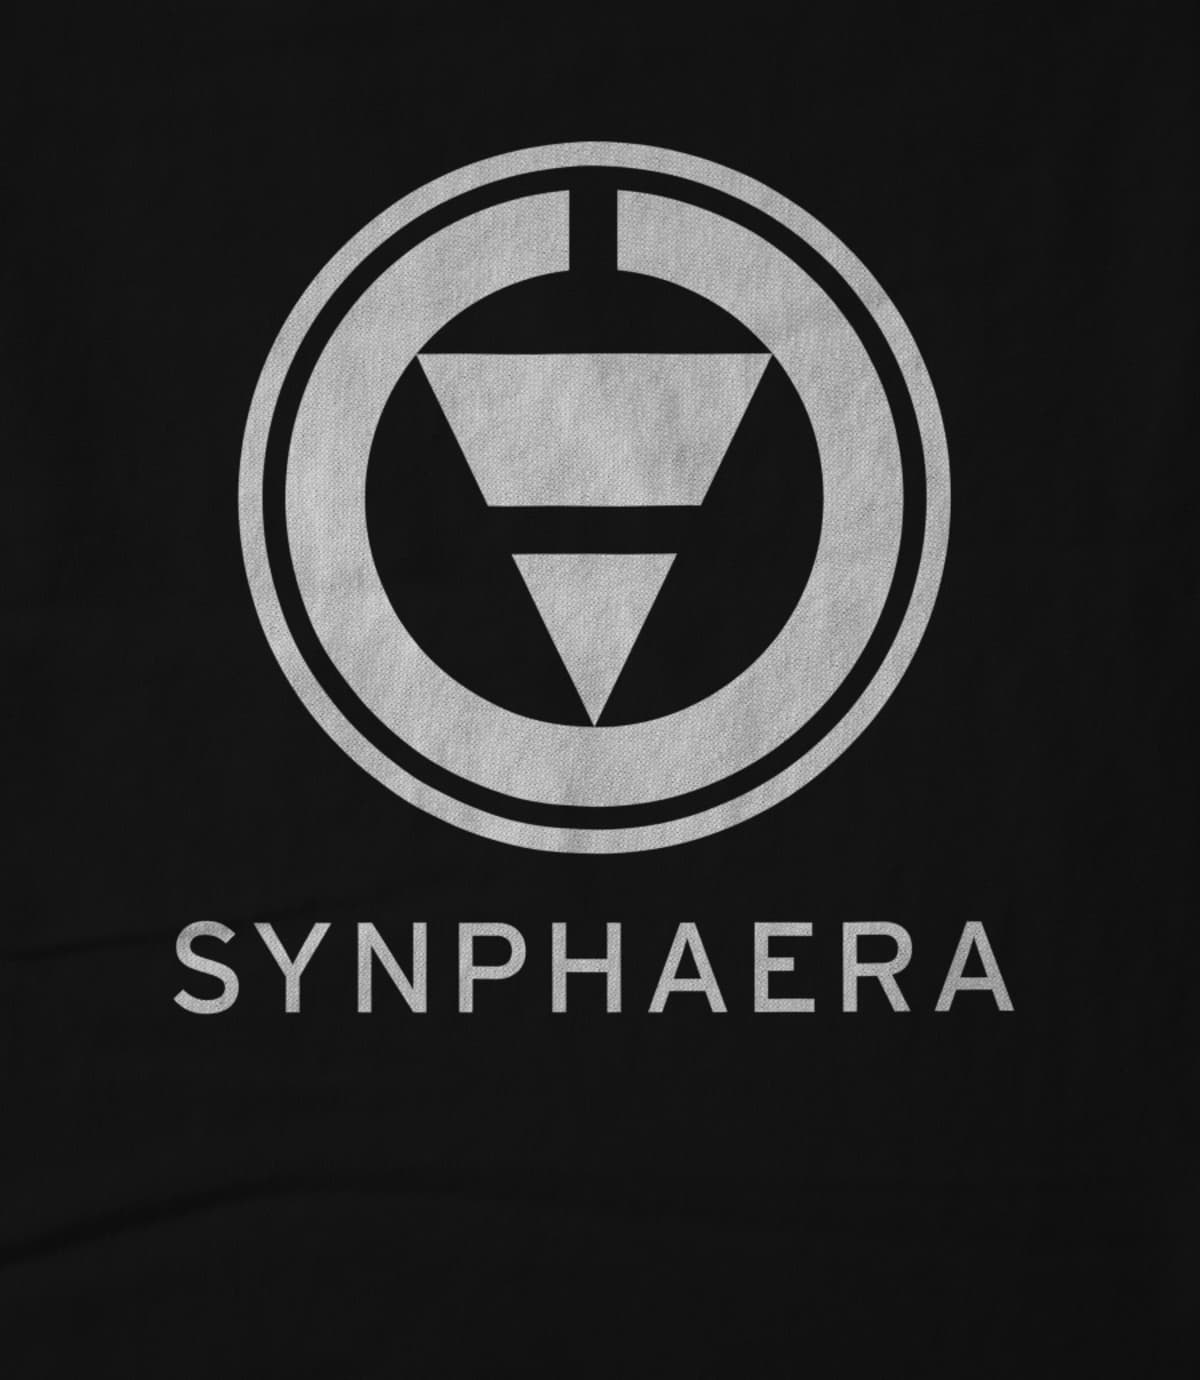 Synphaera original design official 1611772666